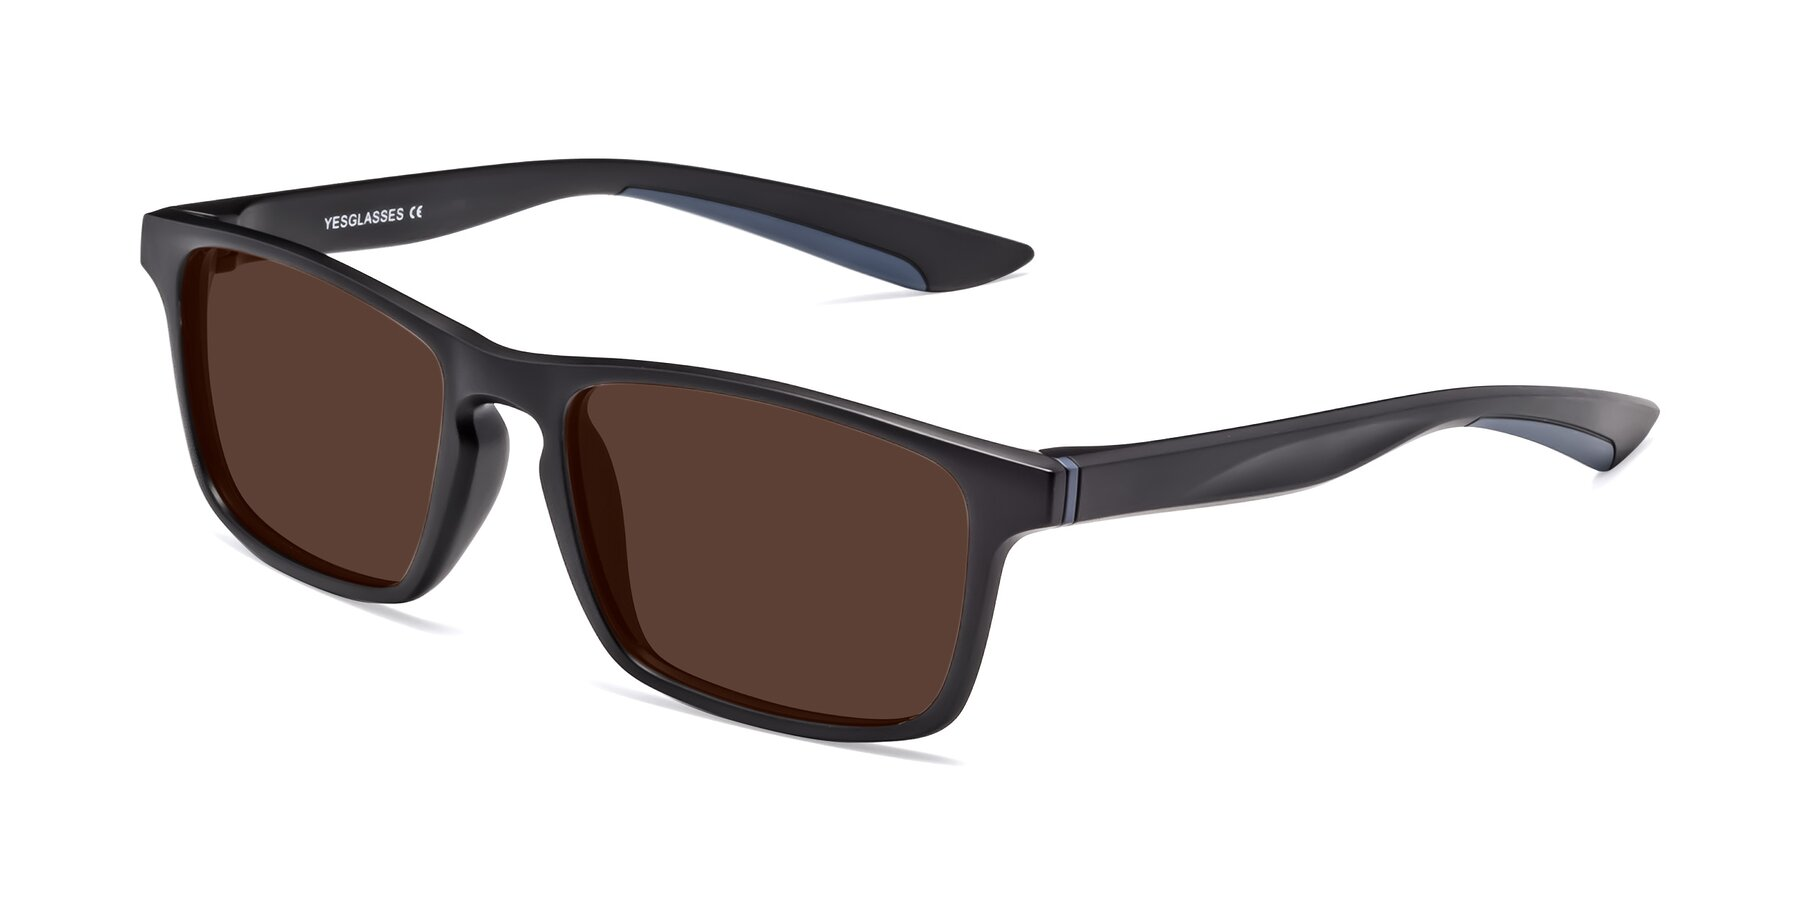 Angle of Passion in Matte Black-Blue with Brown Tinted Lenses